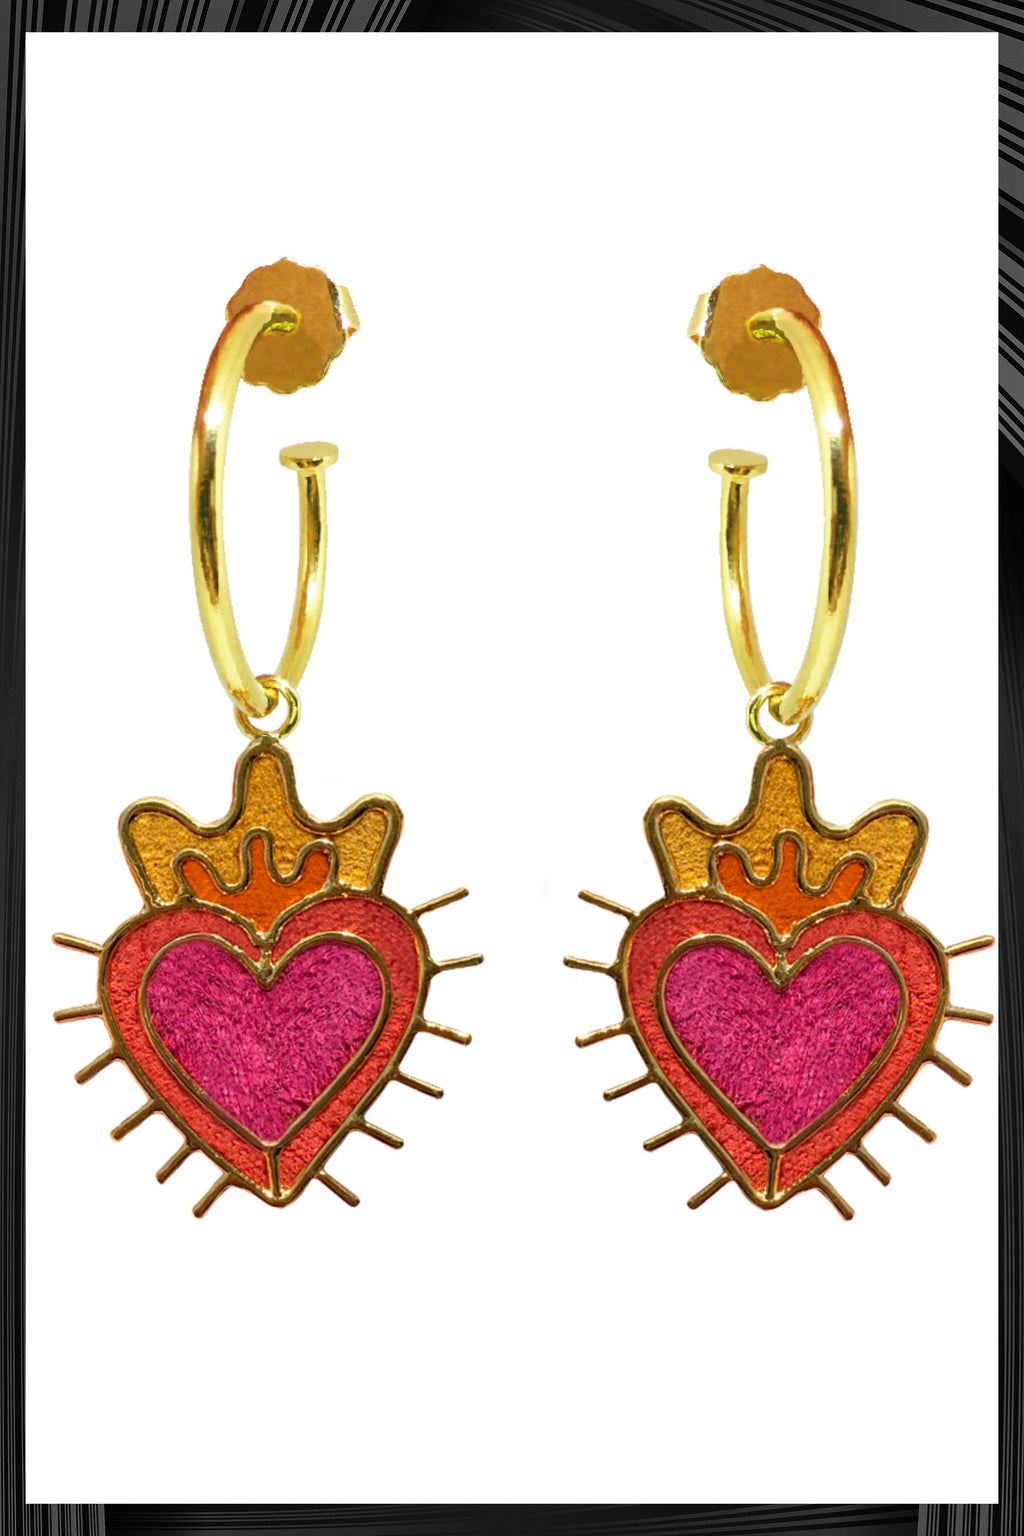 Sagrado Corazon Mini Hoops | Free Delivery - 3 Week Shipping